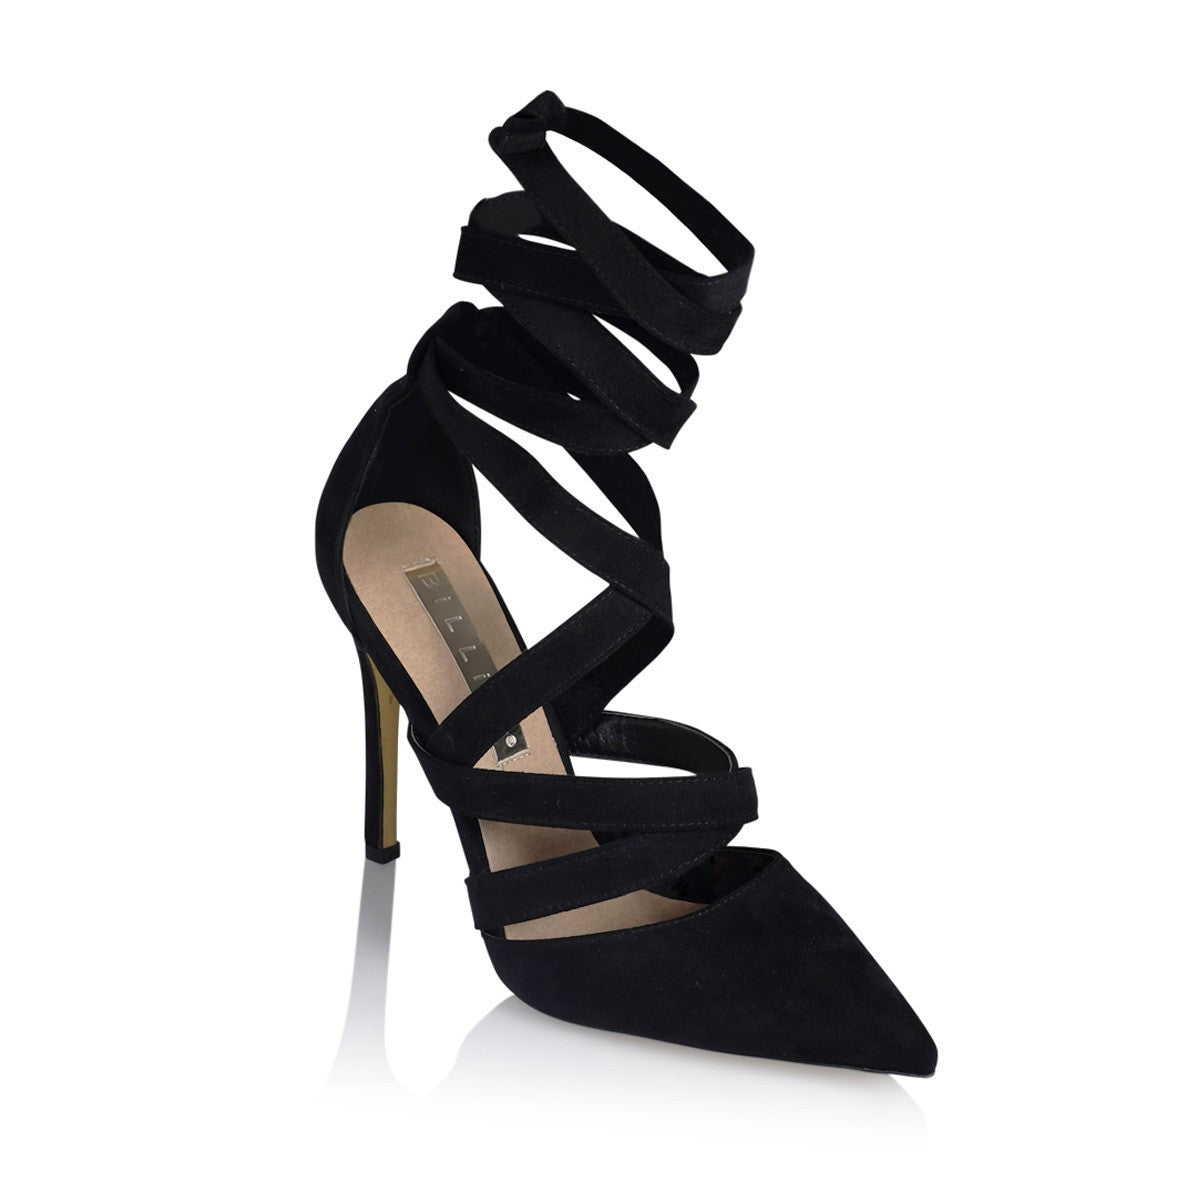 KOKO BLACK SUEDE LACE UP STILLETOS